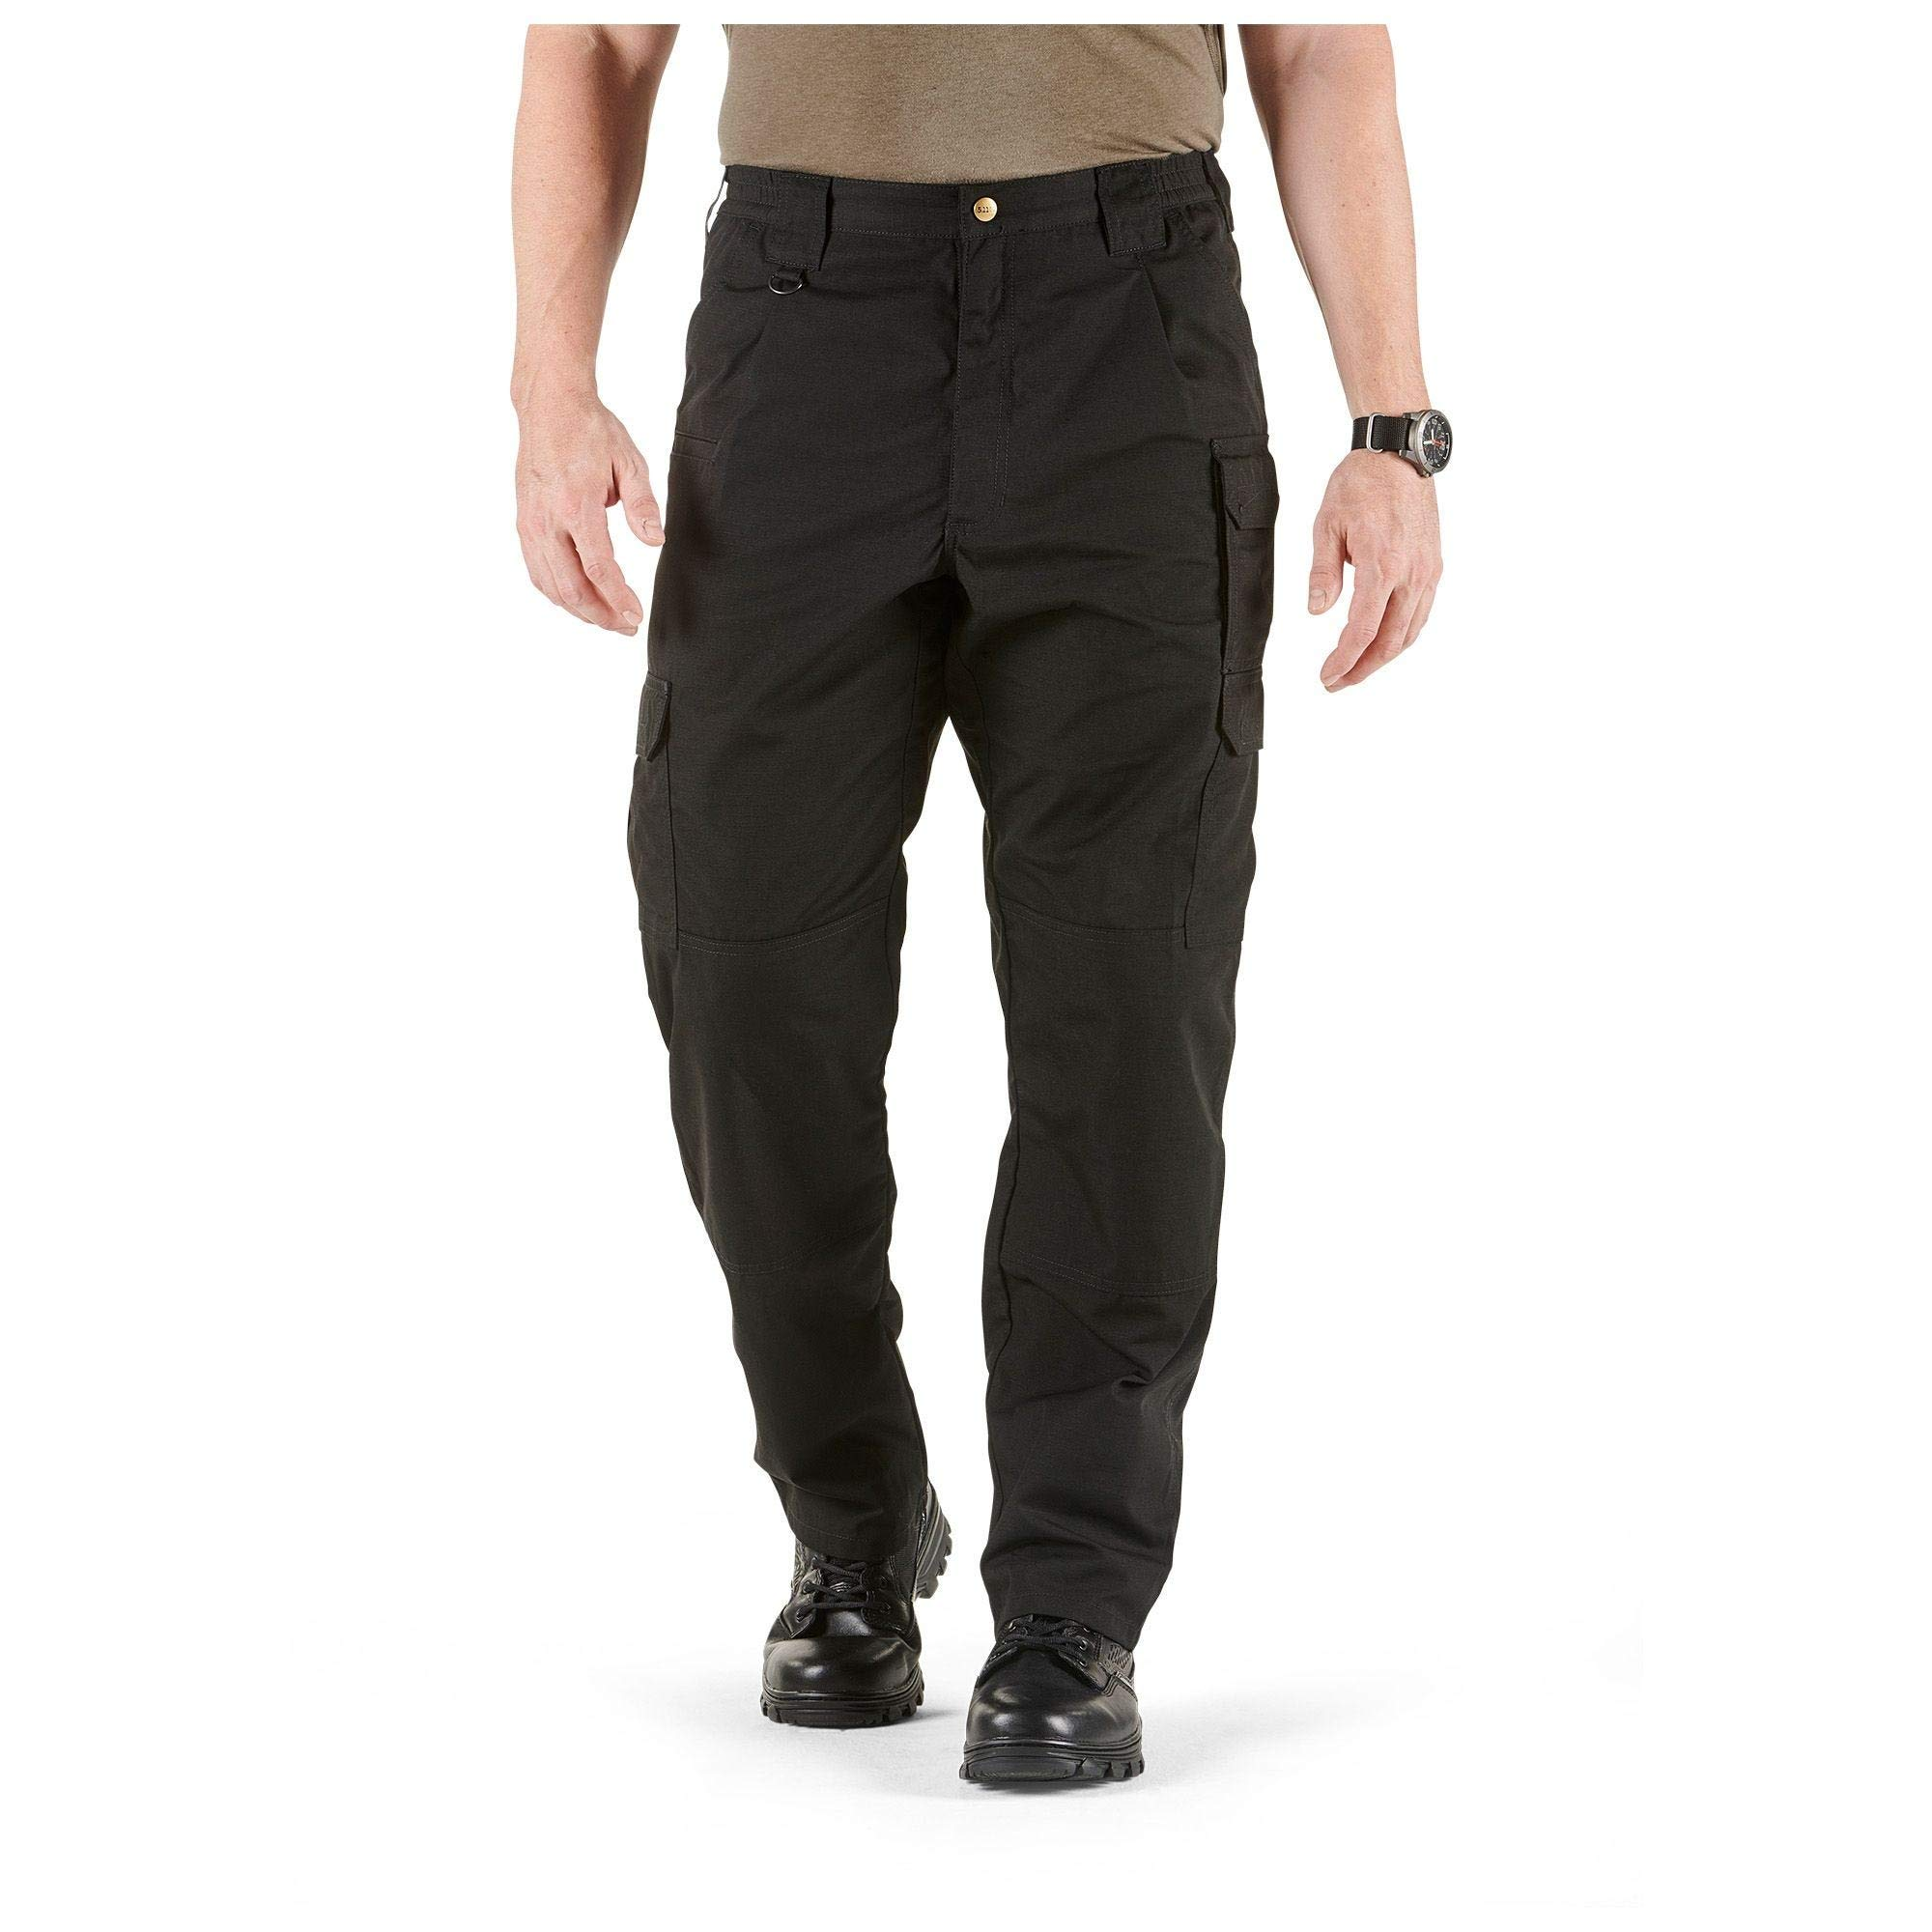 5.11 Tactical Men's Taclite Pro Work Pants, Lightweight Poly-Cotton Ripstop Fabric, Style 74273